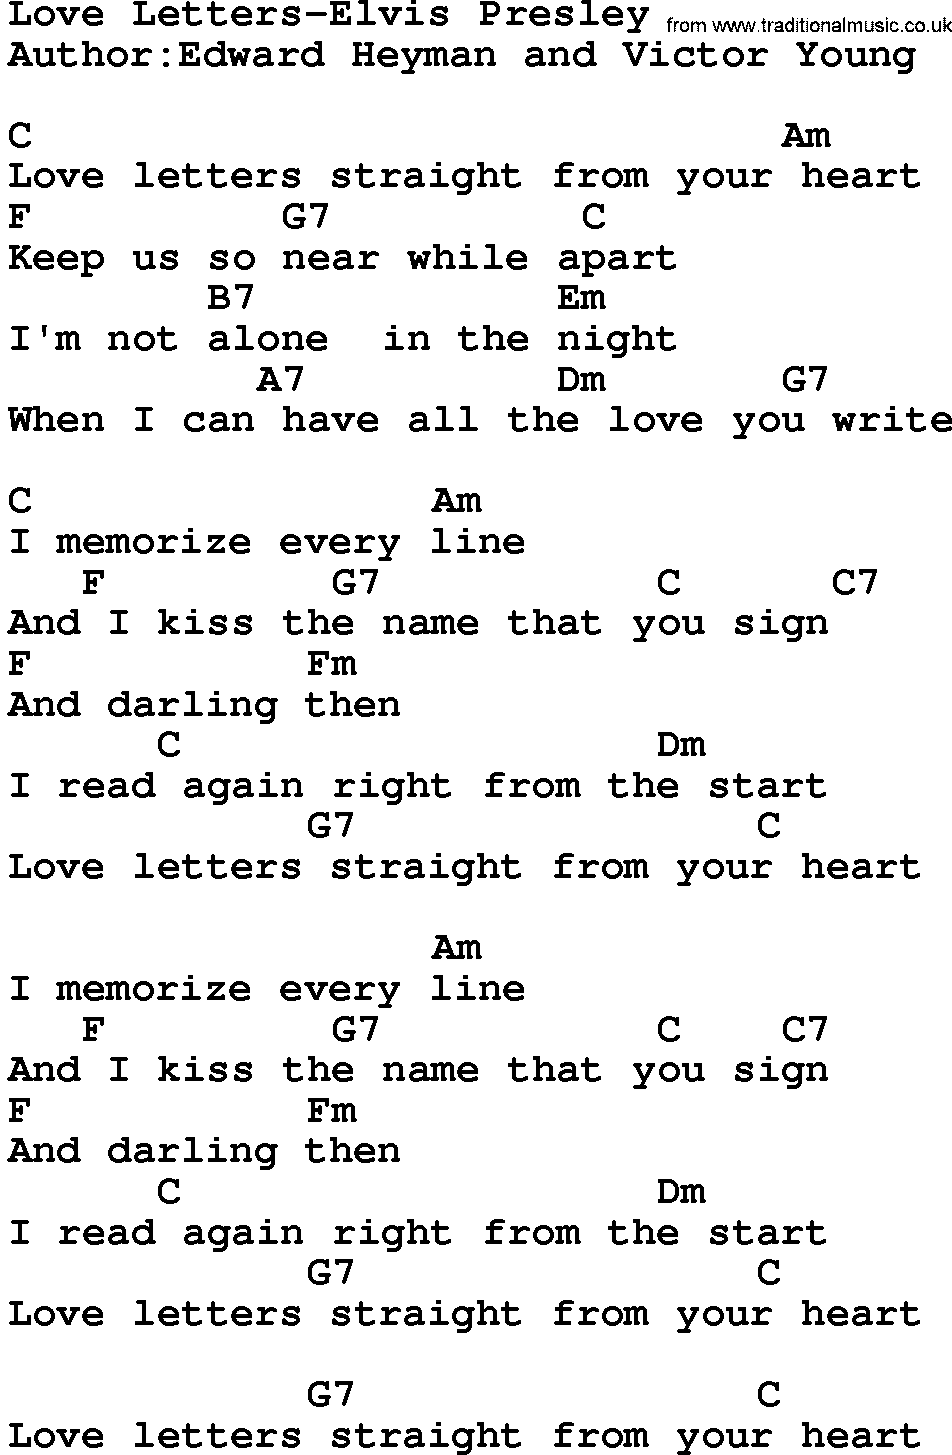 Country Music Love Letters Elvis Presley Lyrics and Chords